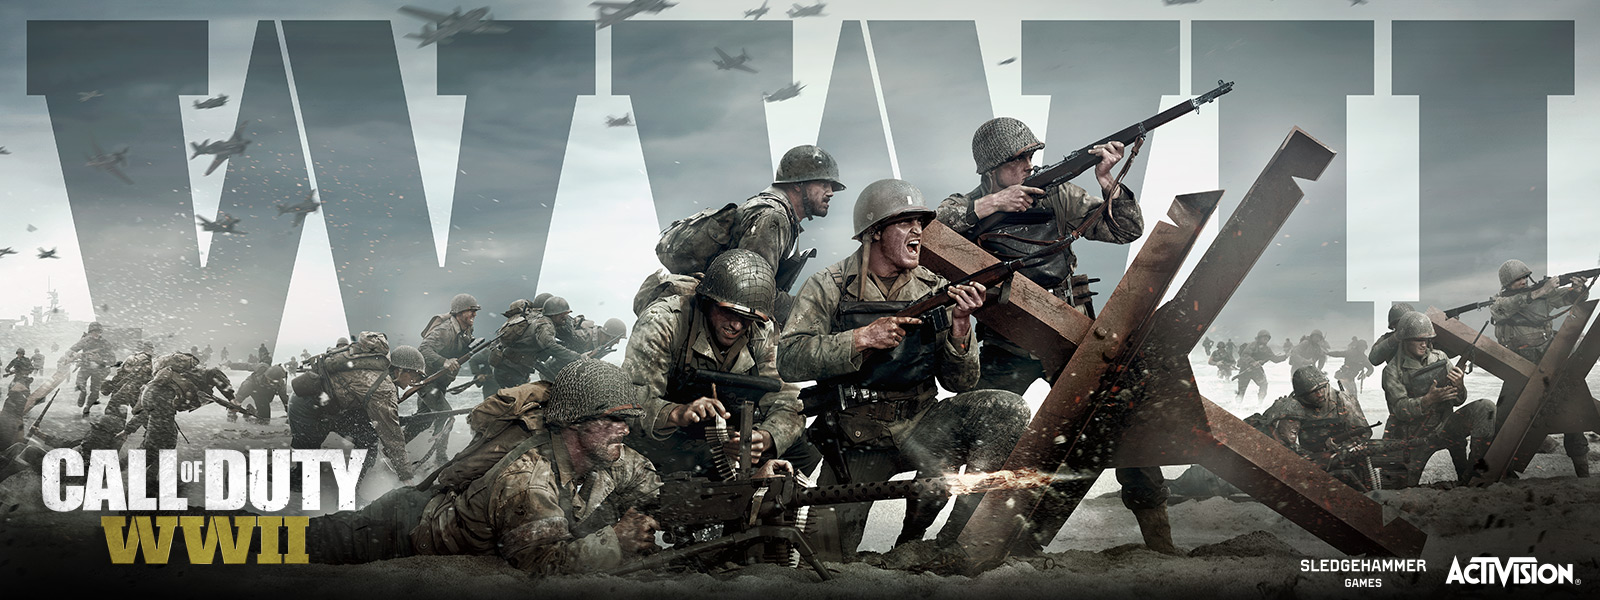 Кряк для Call of Duty: WWII v 1.0